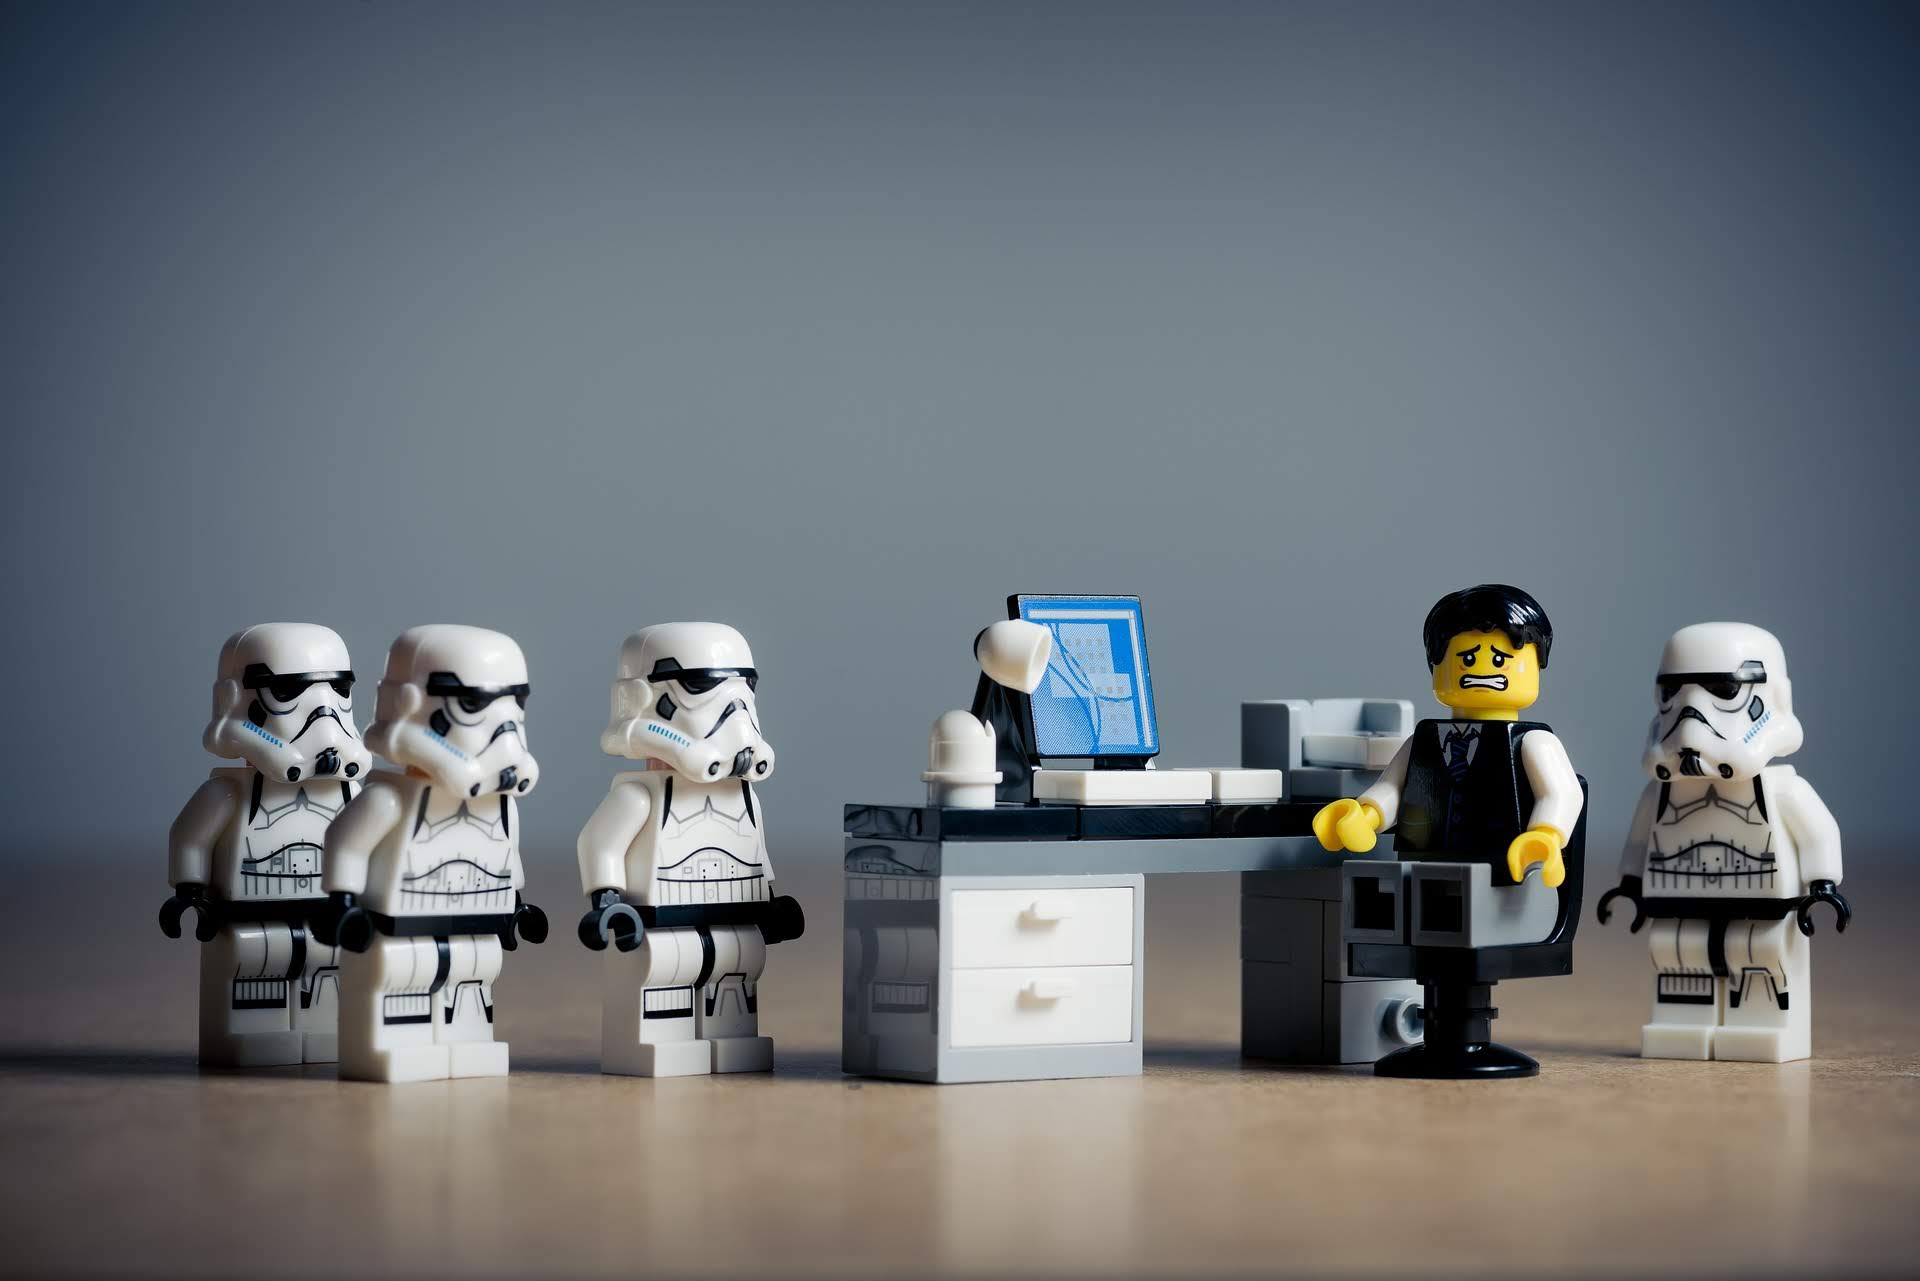 stormtroopers accosting office worker